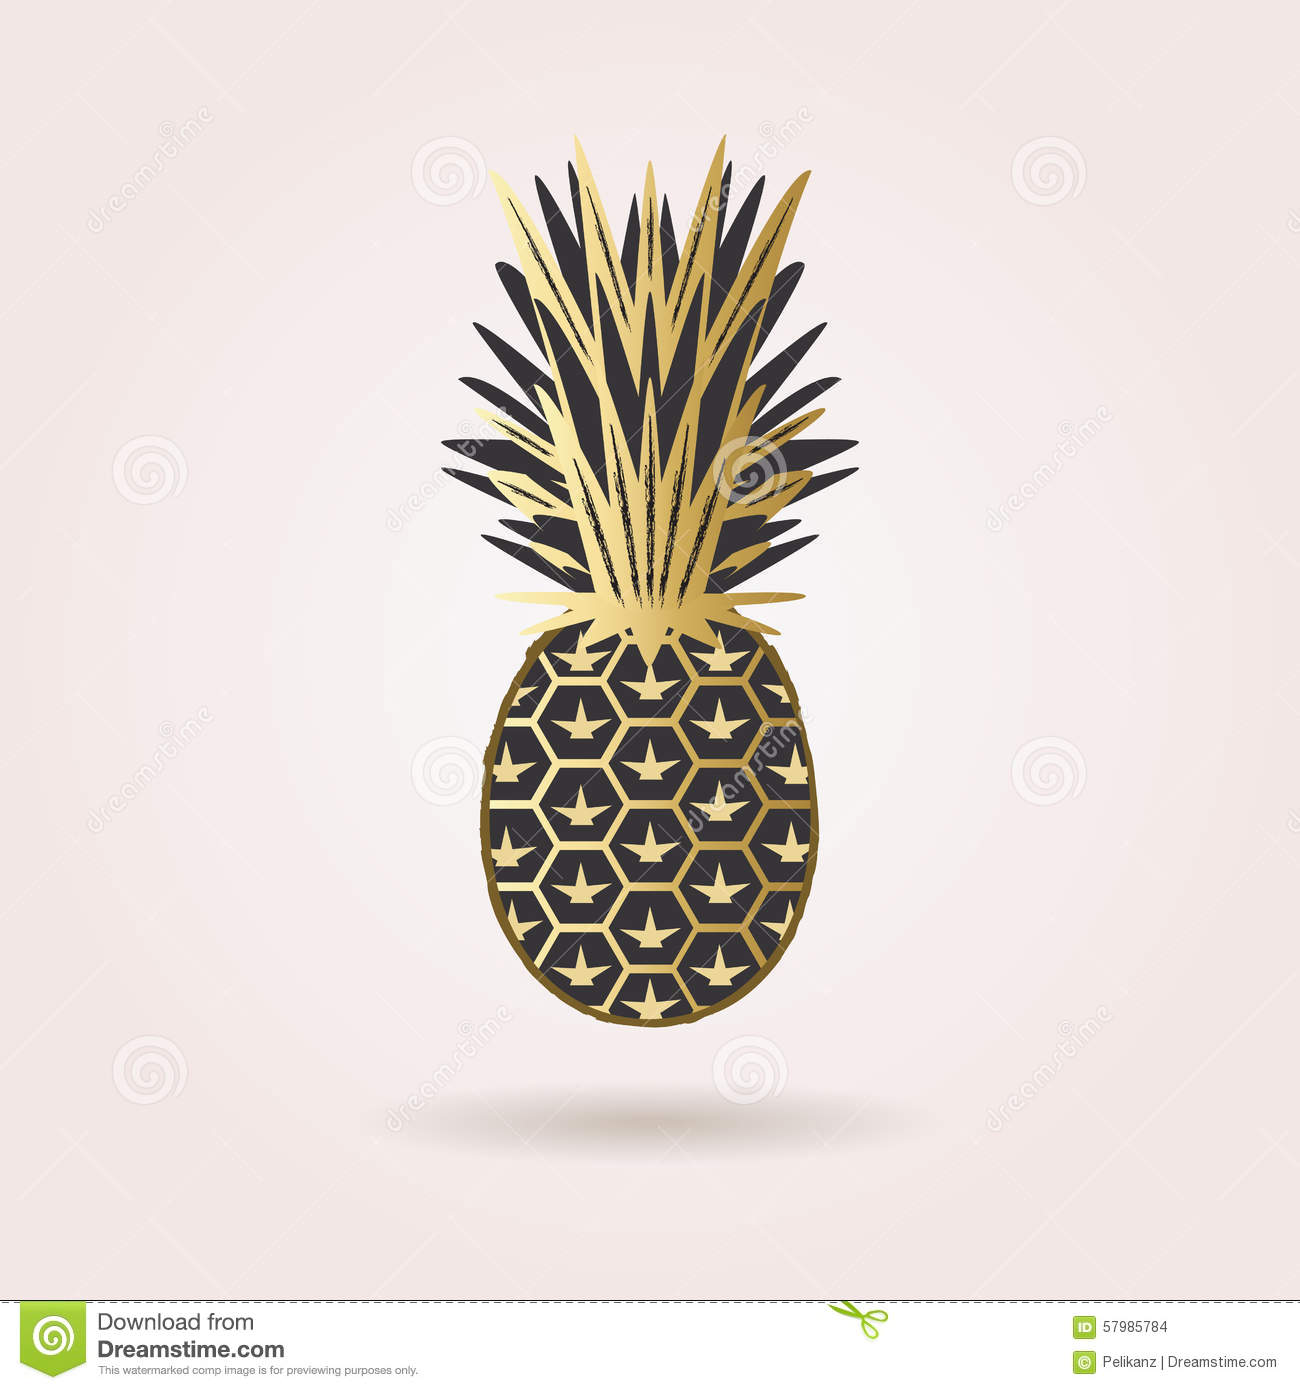 Single Black And Golden Abstract Pineapple Icon Stock